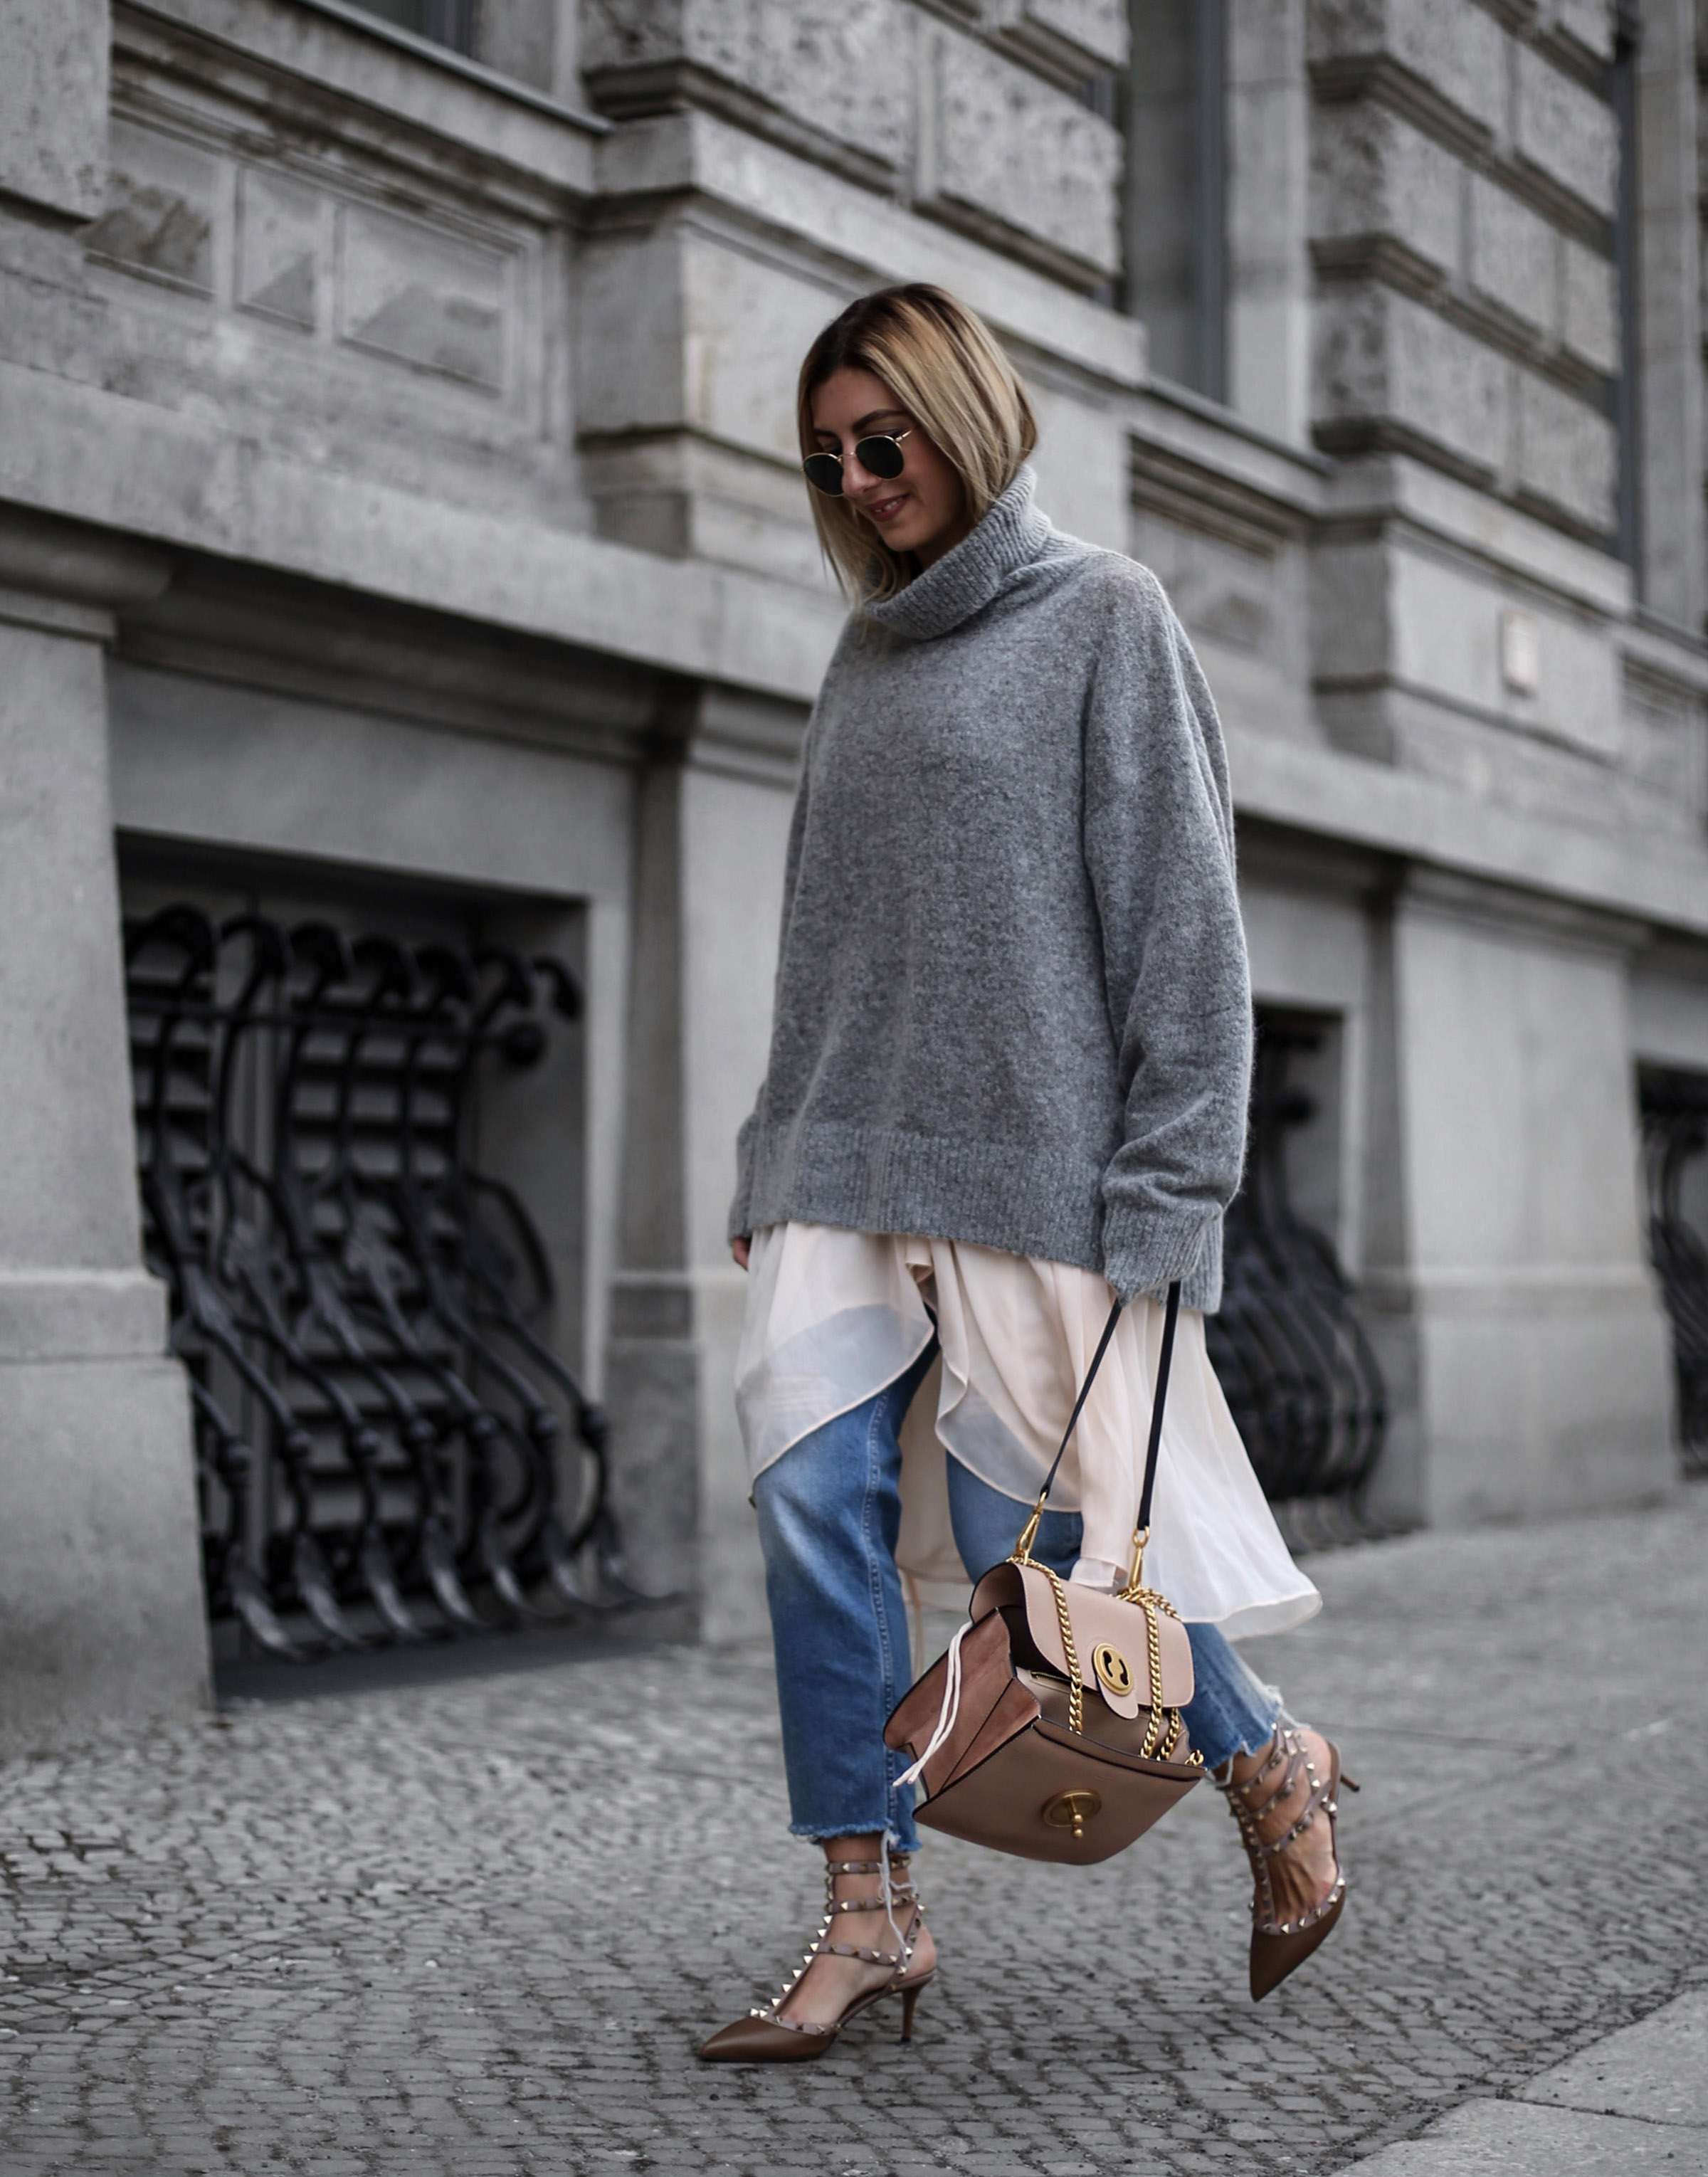 H&M_Trend_layering_oersized_sweater